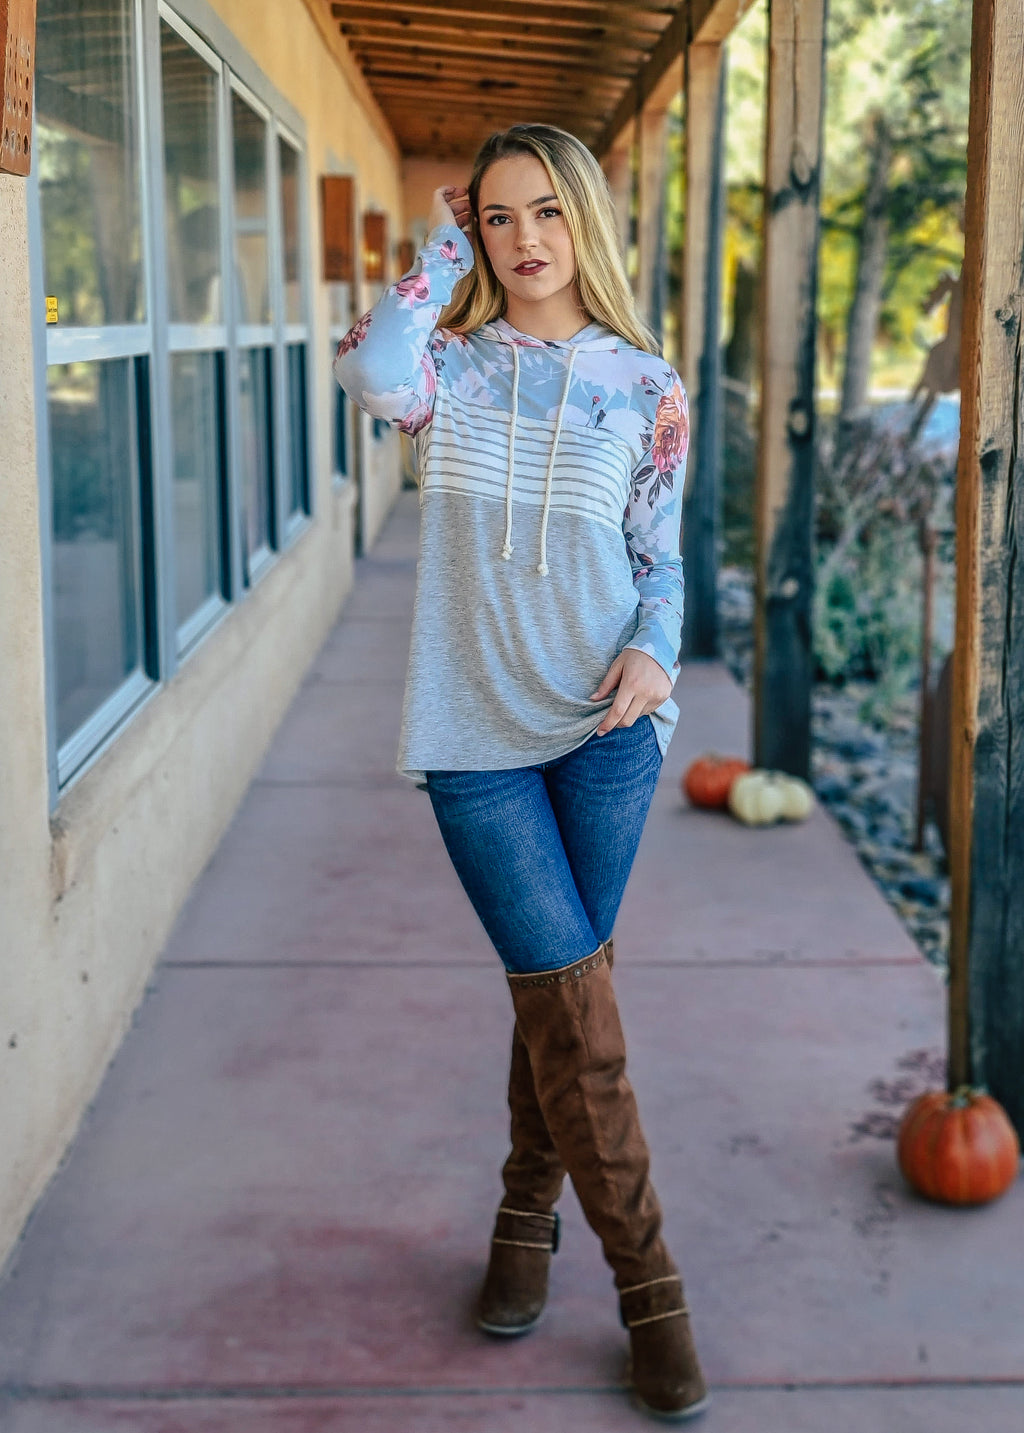 Grey Long Sleeved Hoodie with Ivory and Grey Stripes Block and Blue Floral Top Half, On Blonde Model with Denim Jeans and Brown Knee High Boots, Taken Outside in Natural Light